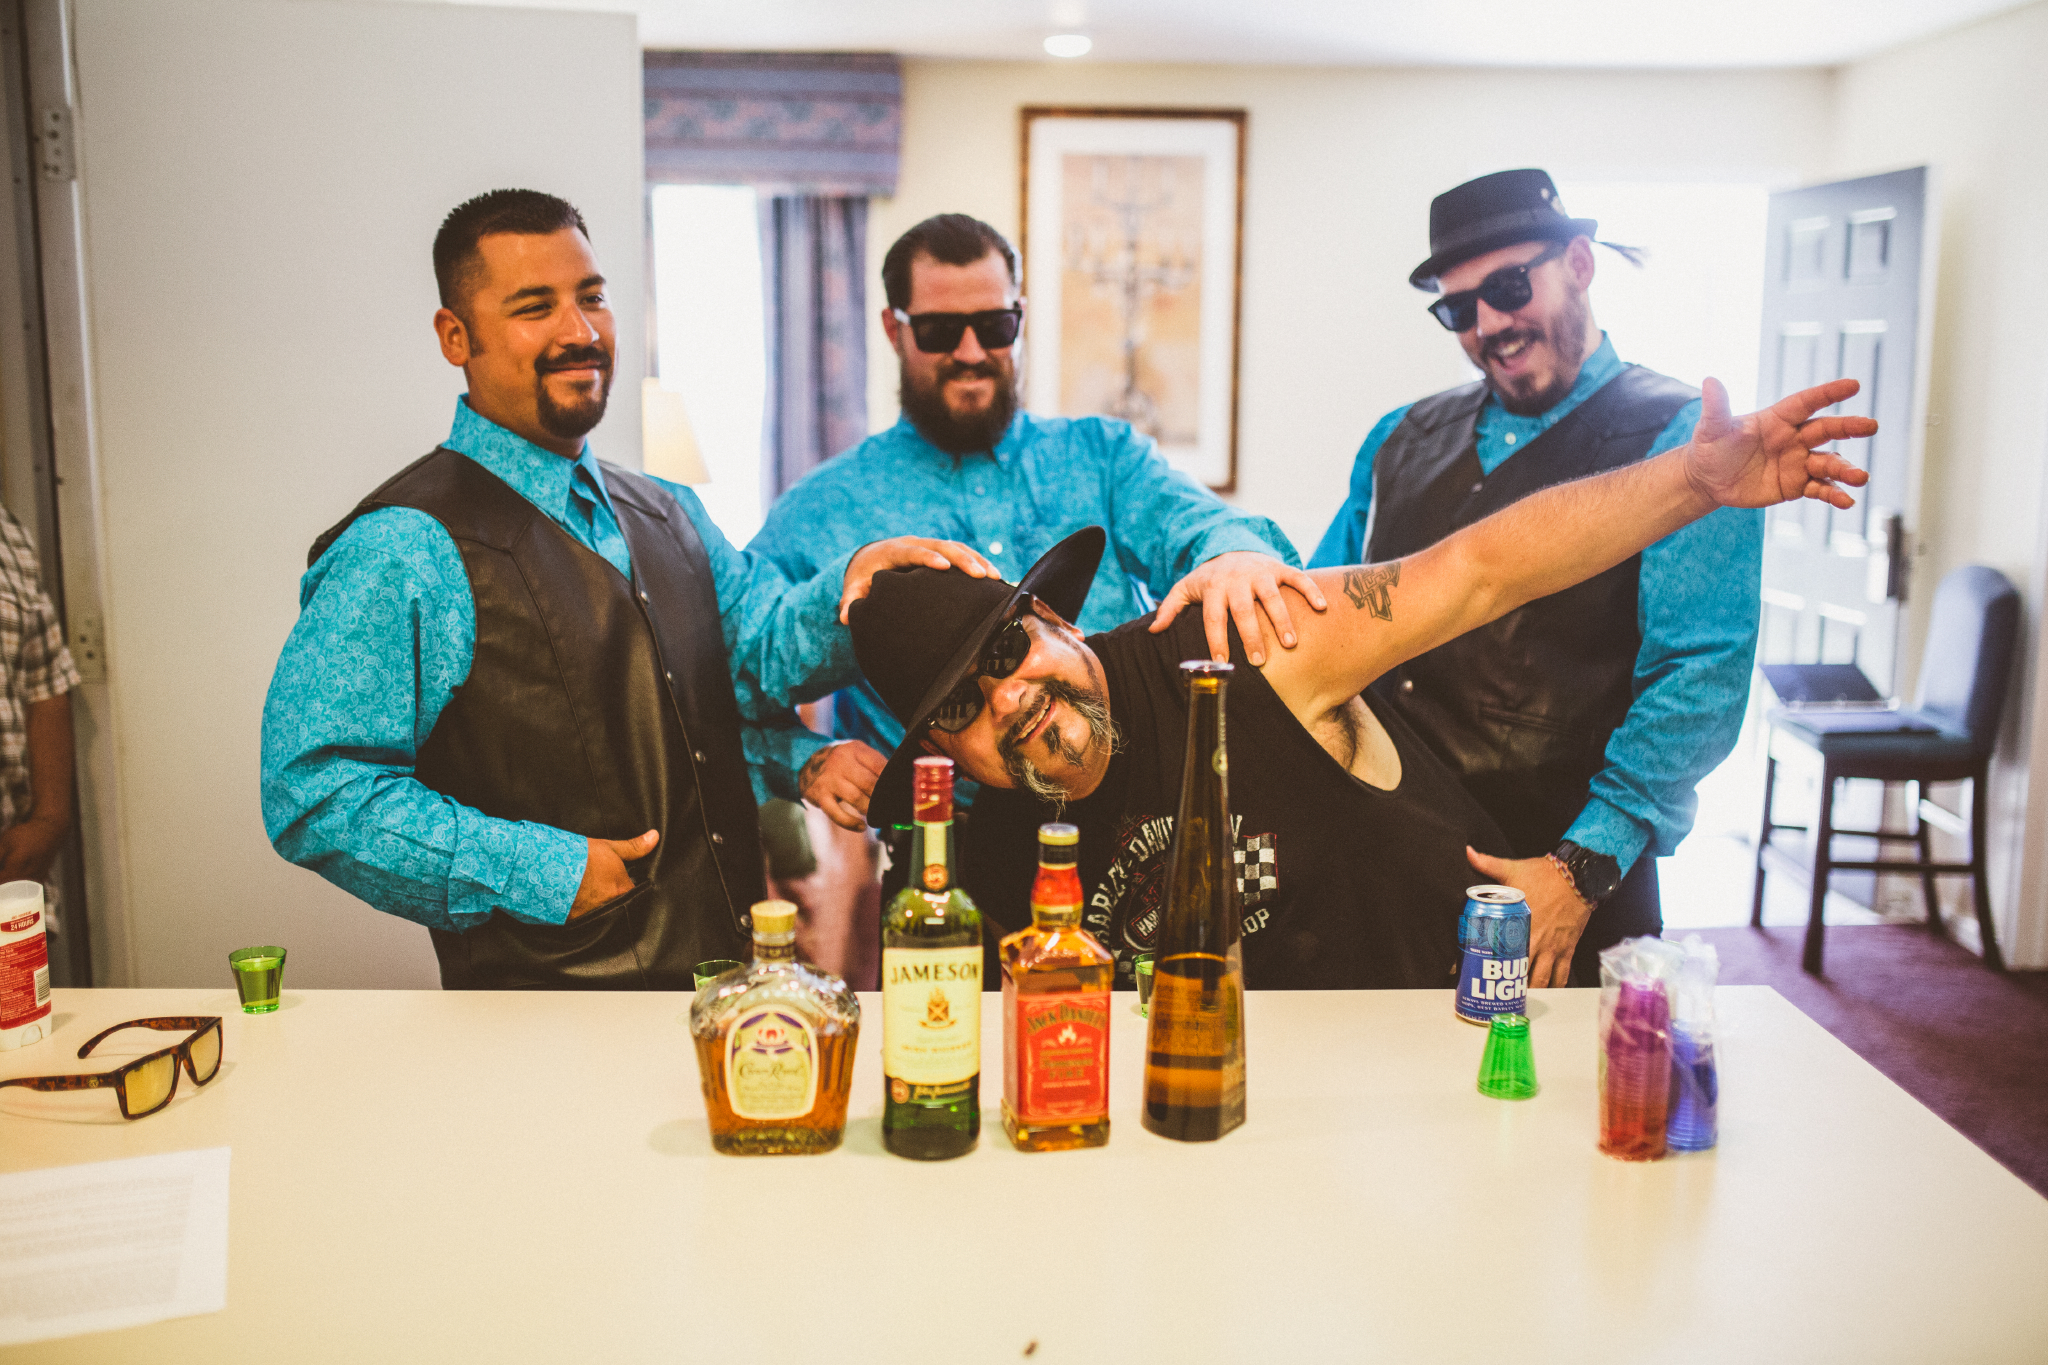 san diego wedding   photographer   men in vests and hats posing in front of liquor